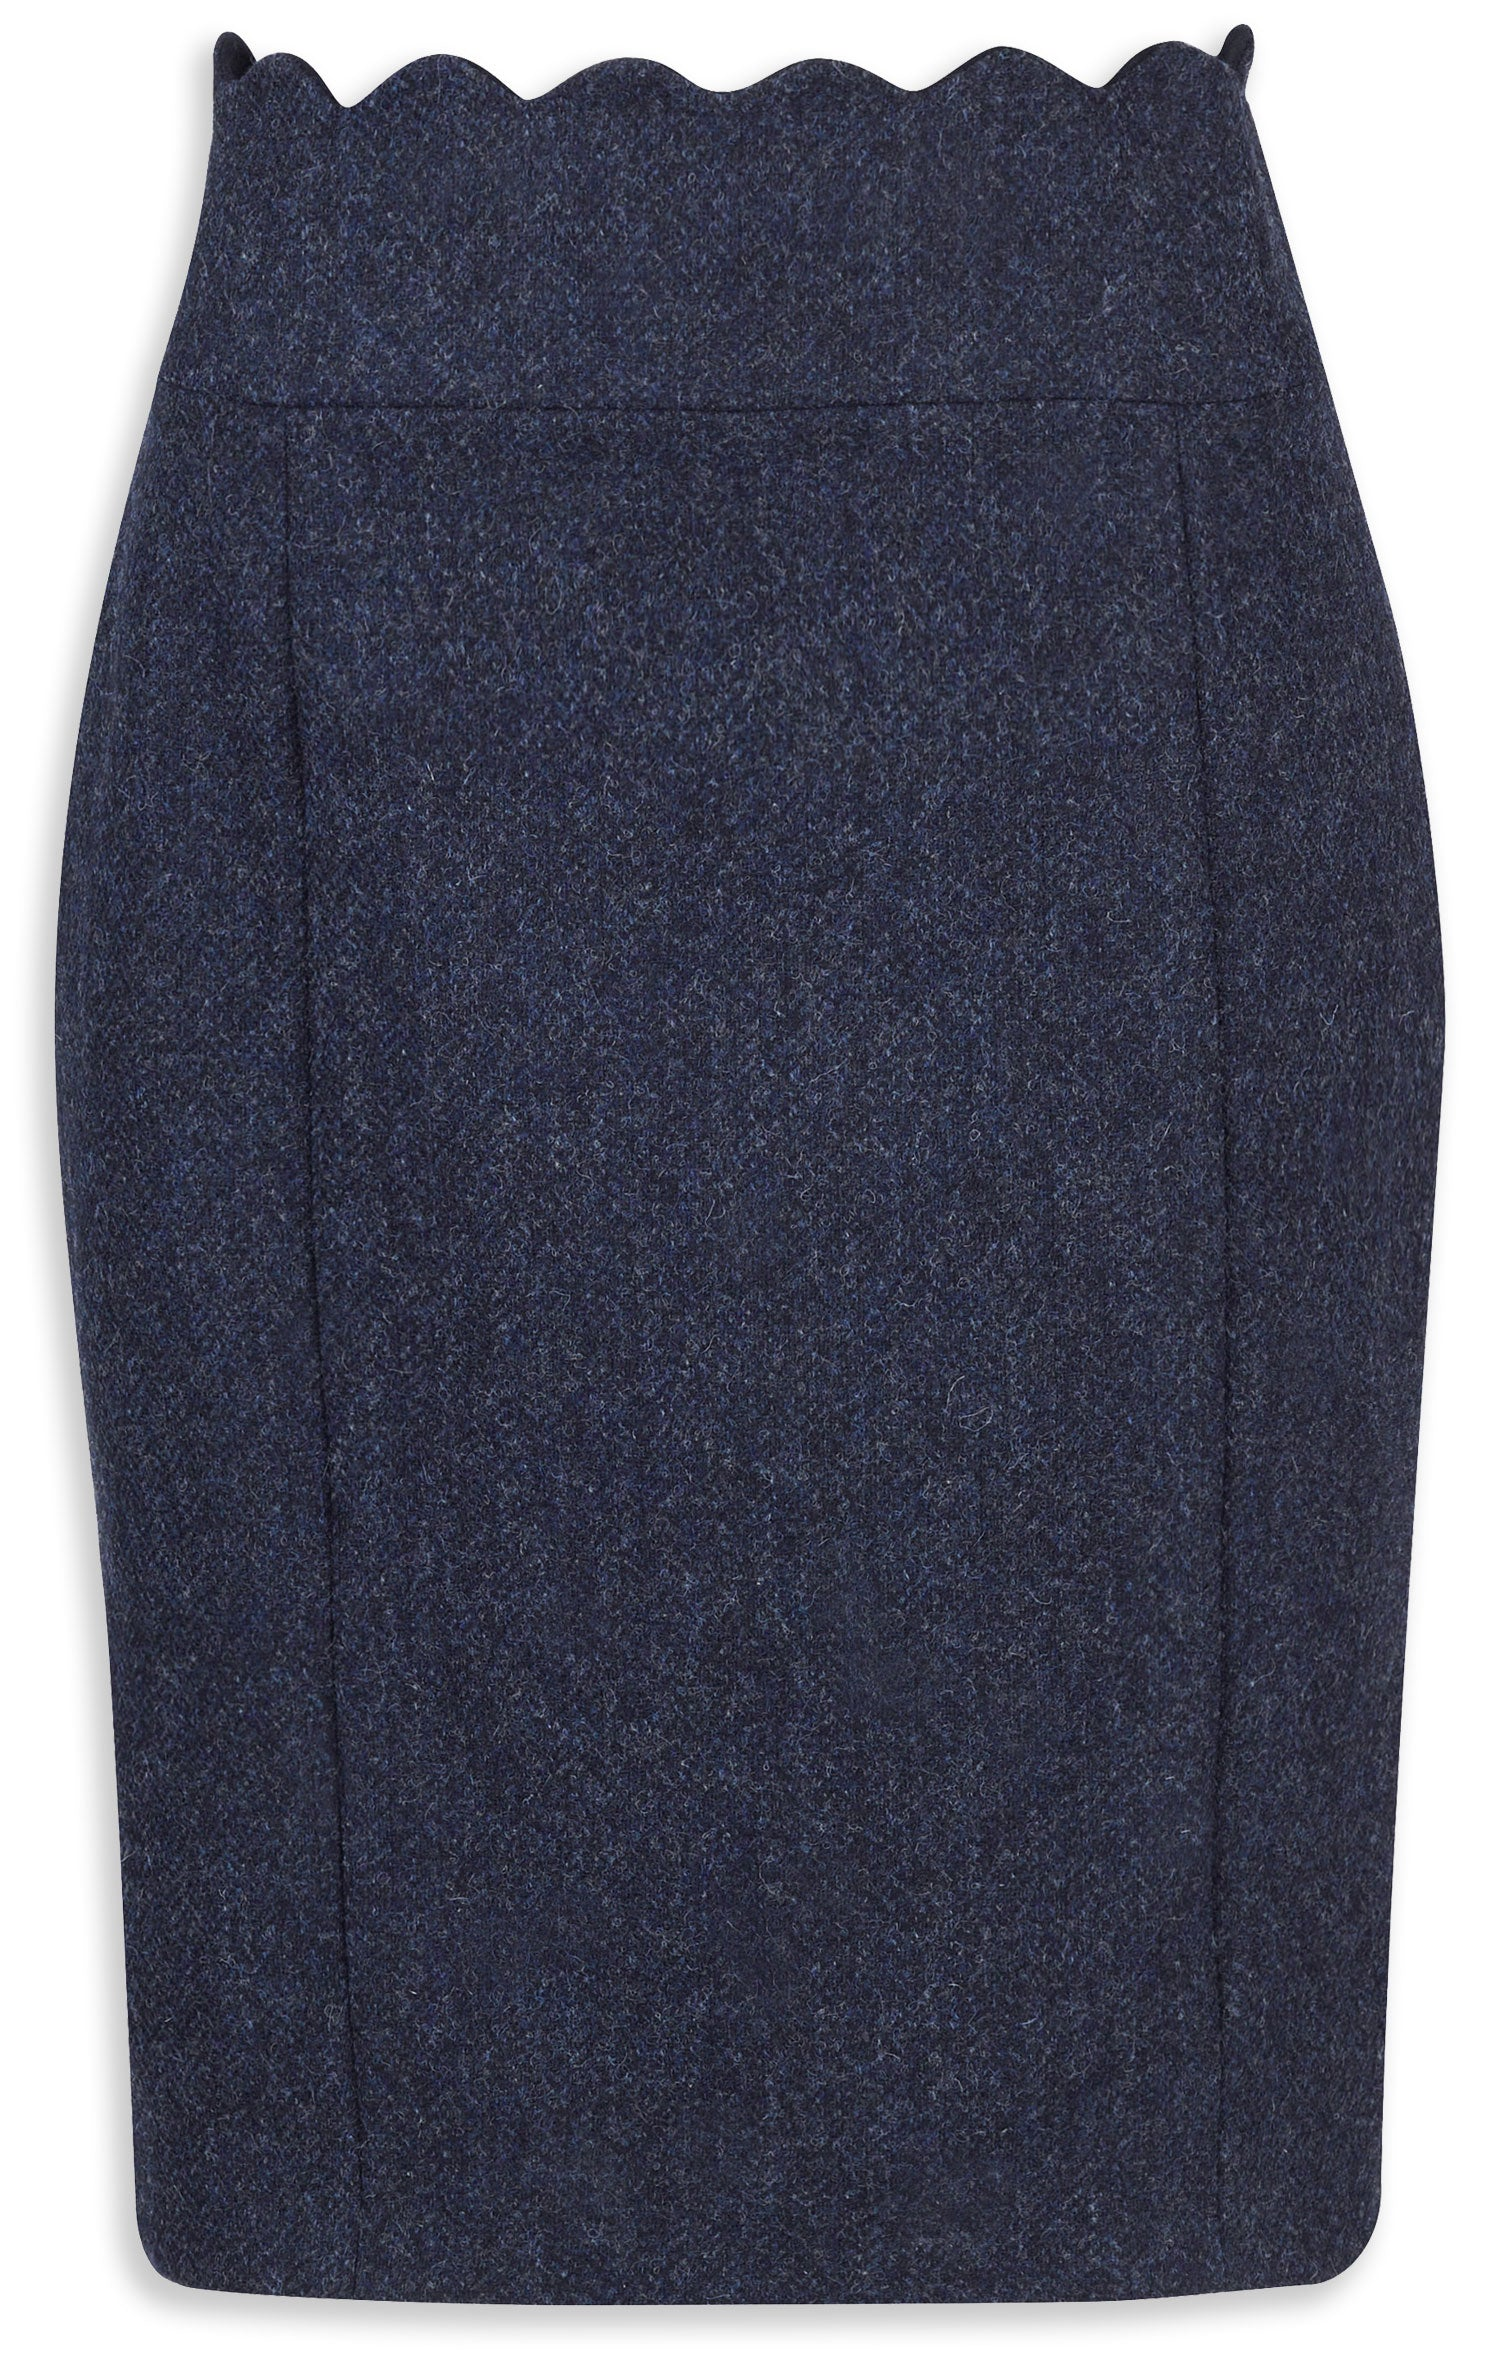 Jack Murphy Taylor Tweed Skirt Navy Herringbone,